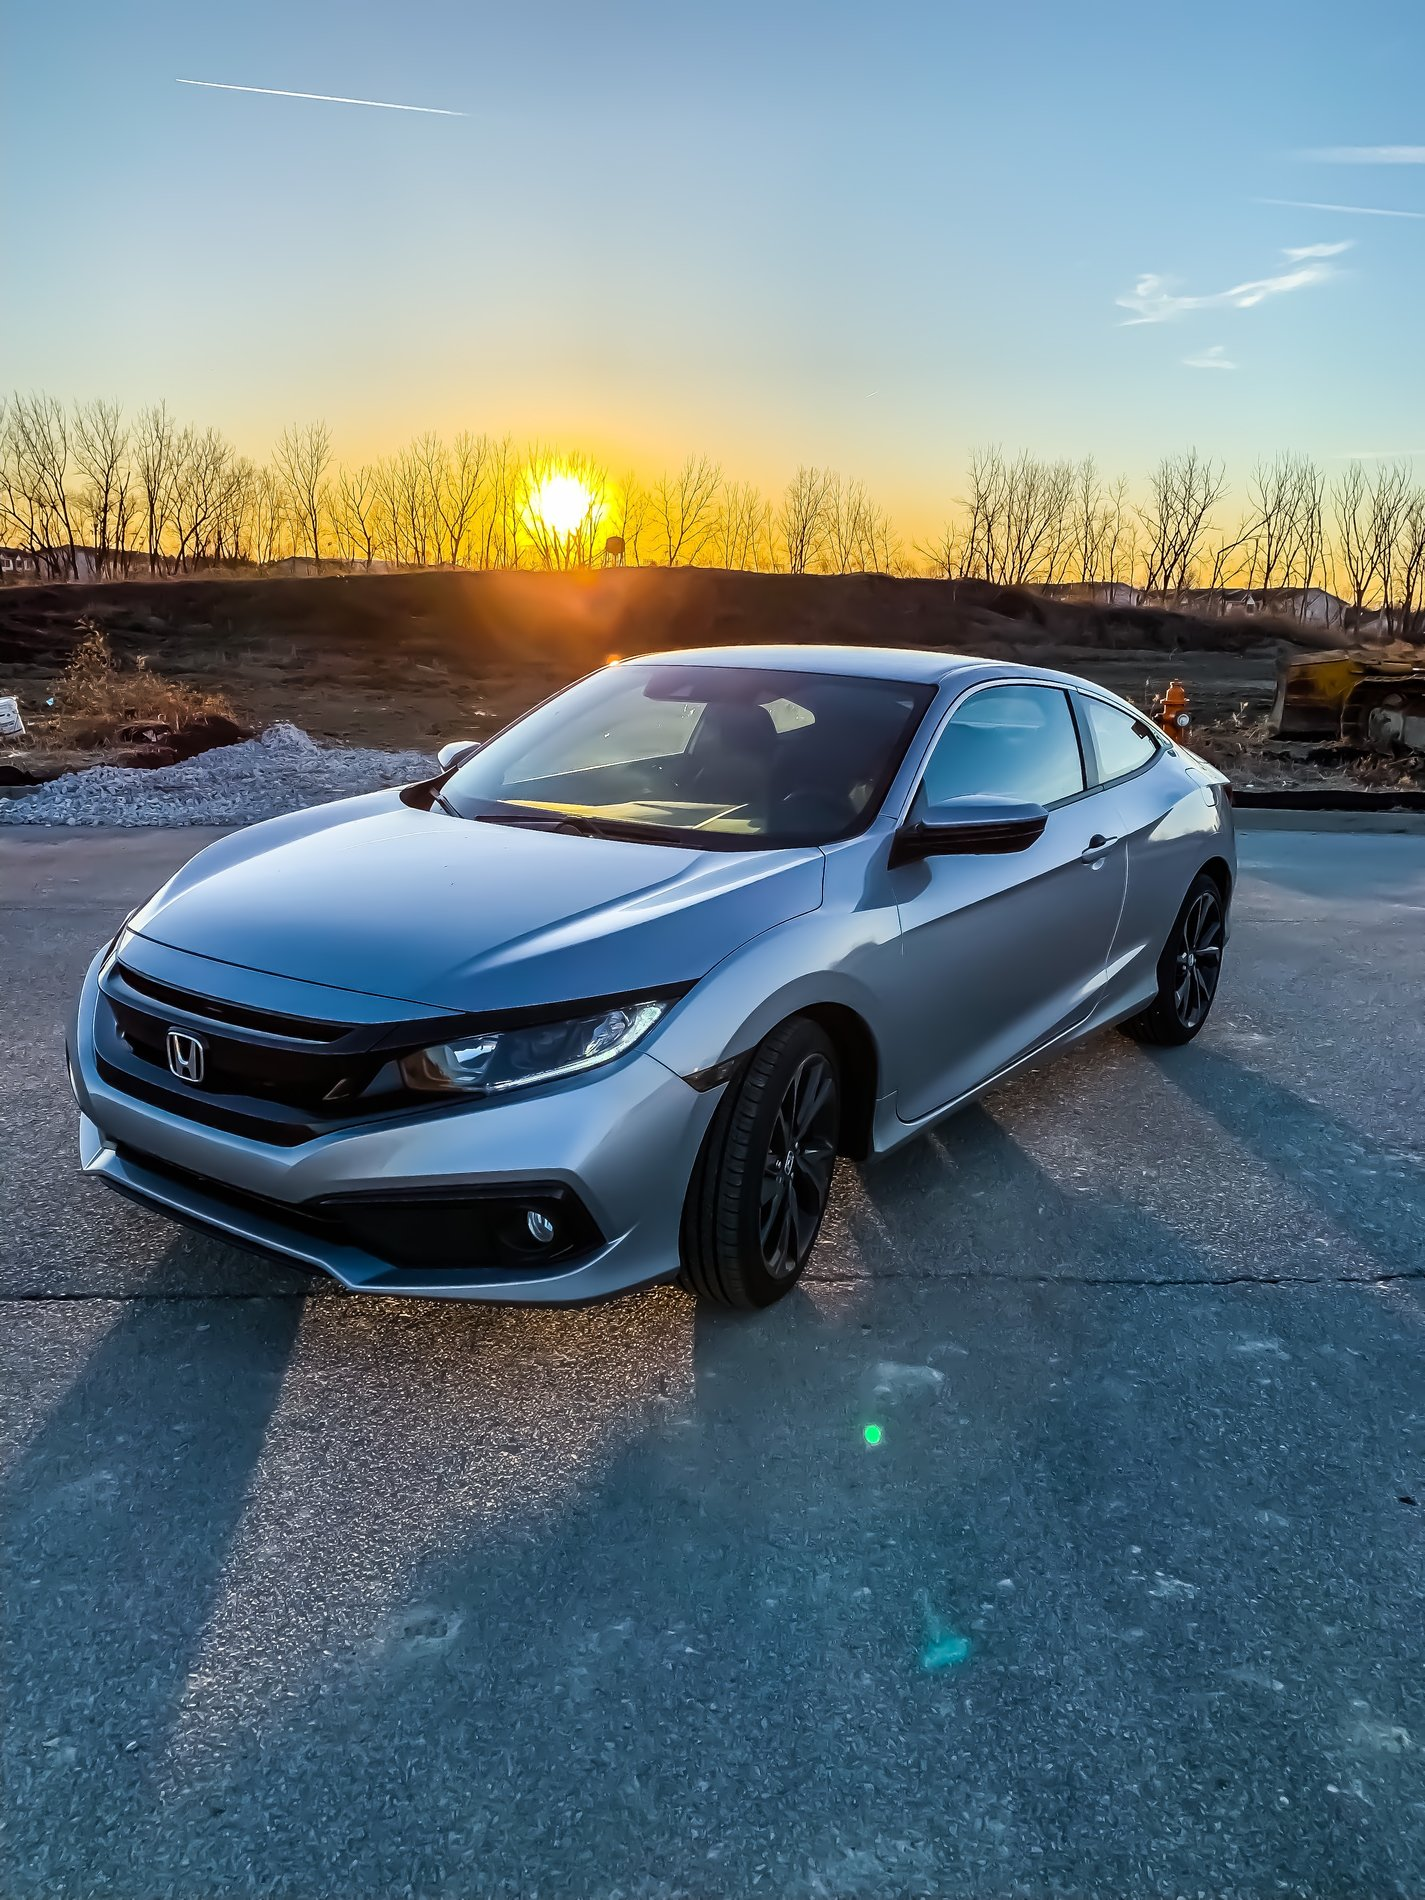 Honda Civic Modifications : honda, civic, modifications, Civic, Sport, Coupe/Sedan, Mods?, 2016+, Honda, Forum, (10th, Forum,, CivicX.com